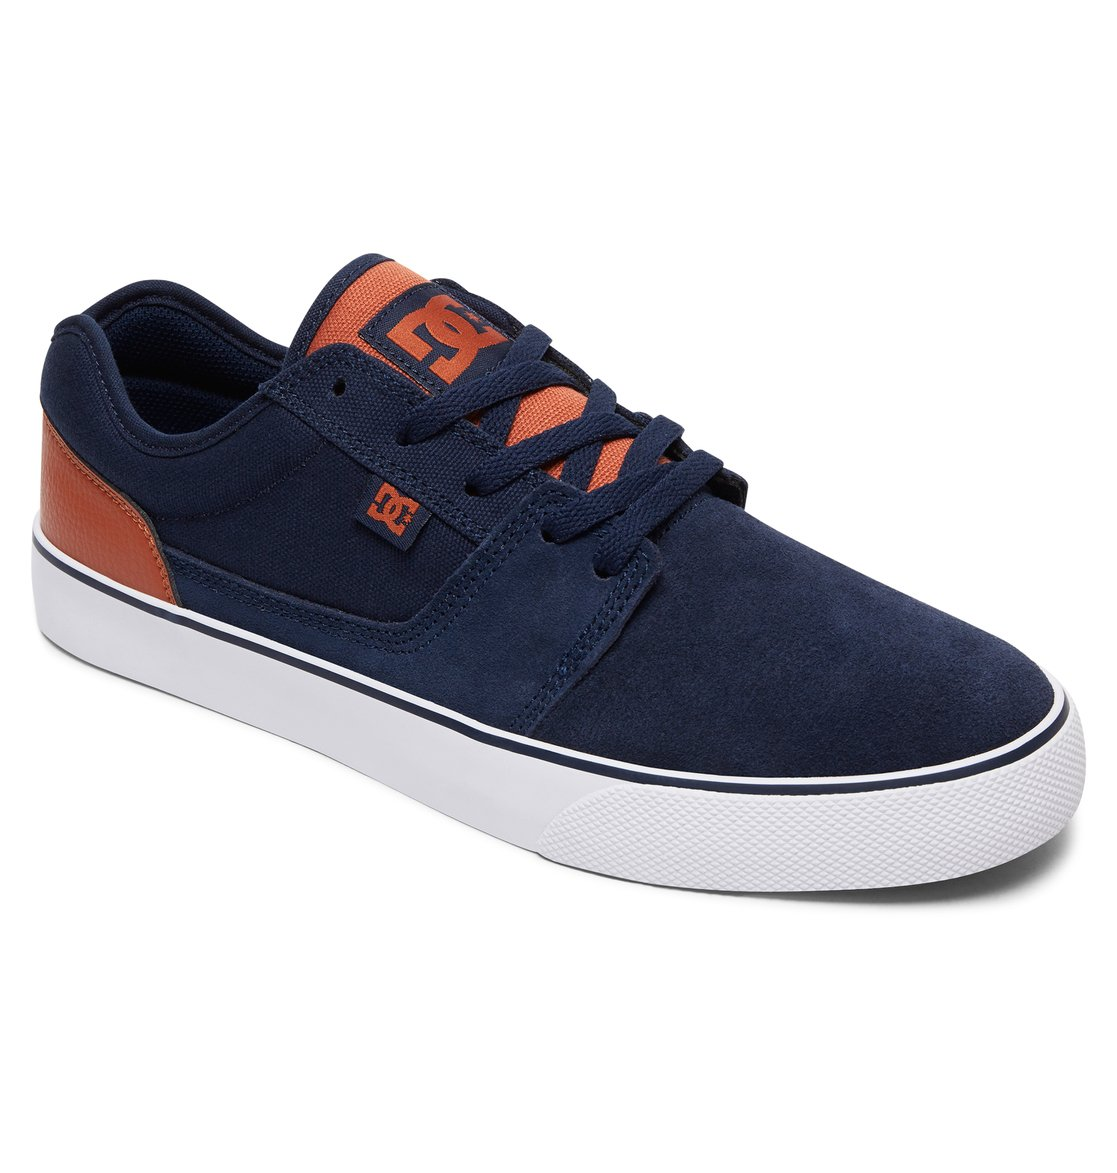 DC-Shoes-Tonik-Baskets-pour-Homme-302905 miniature 8